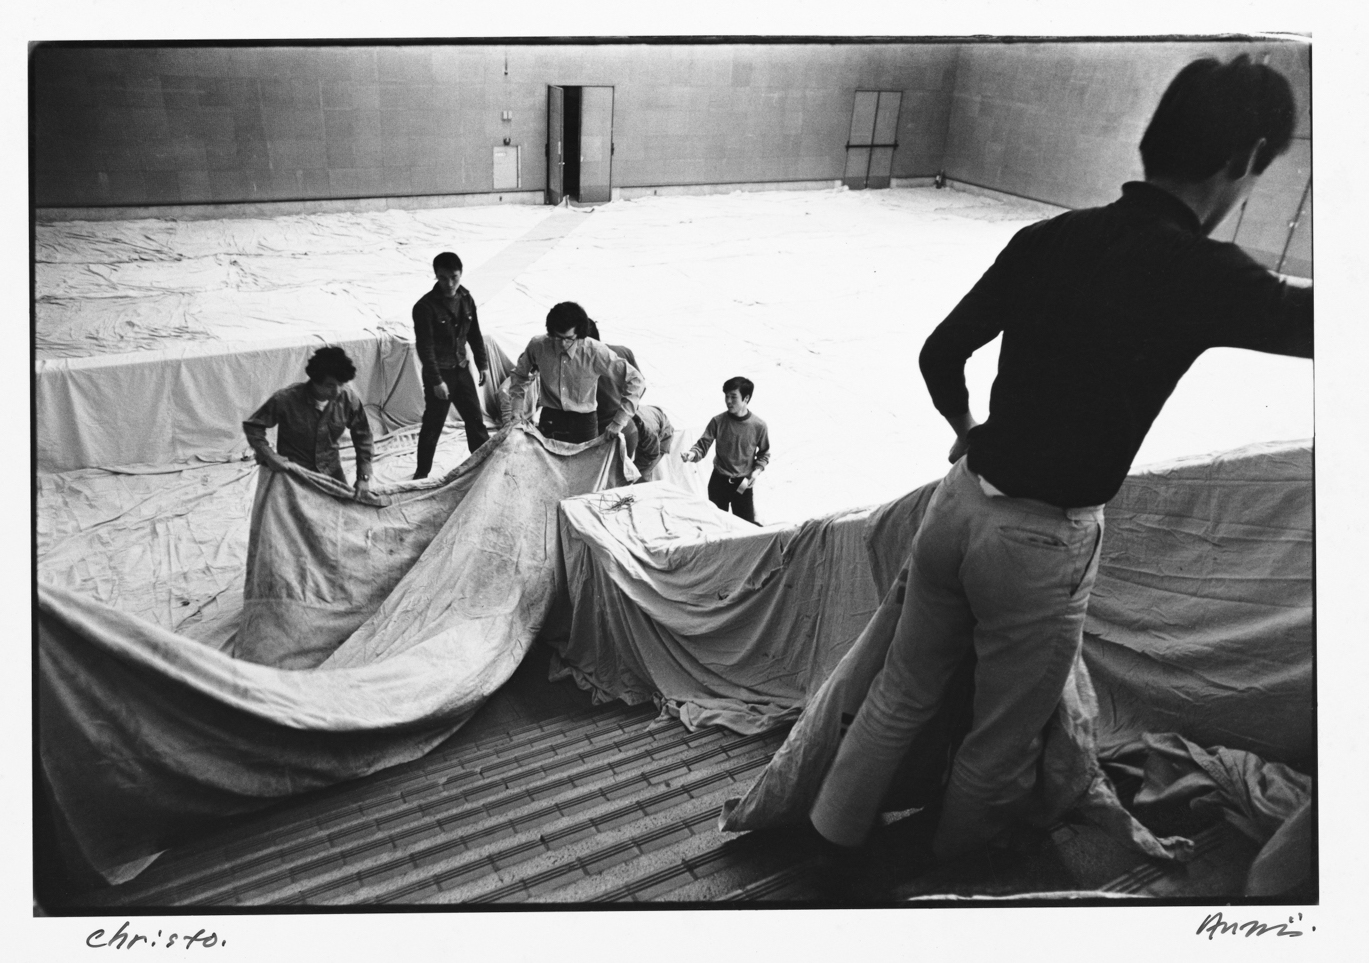 Shigeo Anzaï Christo, The 10th Tokyo Biennale '70 - Between Man and Matter, Tokyo Metropolitan Art Museum. May 1970 Baryta-coated silver print Courtesy the artist, Zeit-Foto, Tokyo and White Rainbow, London